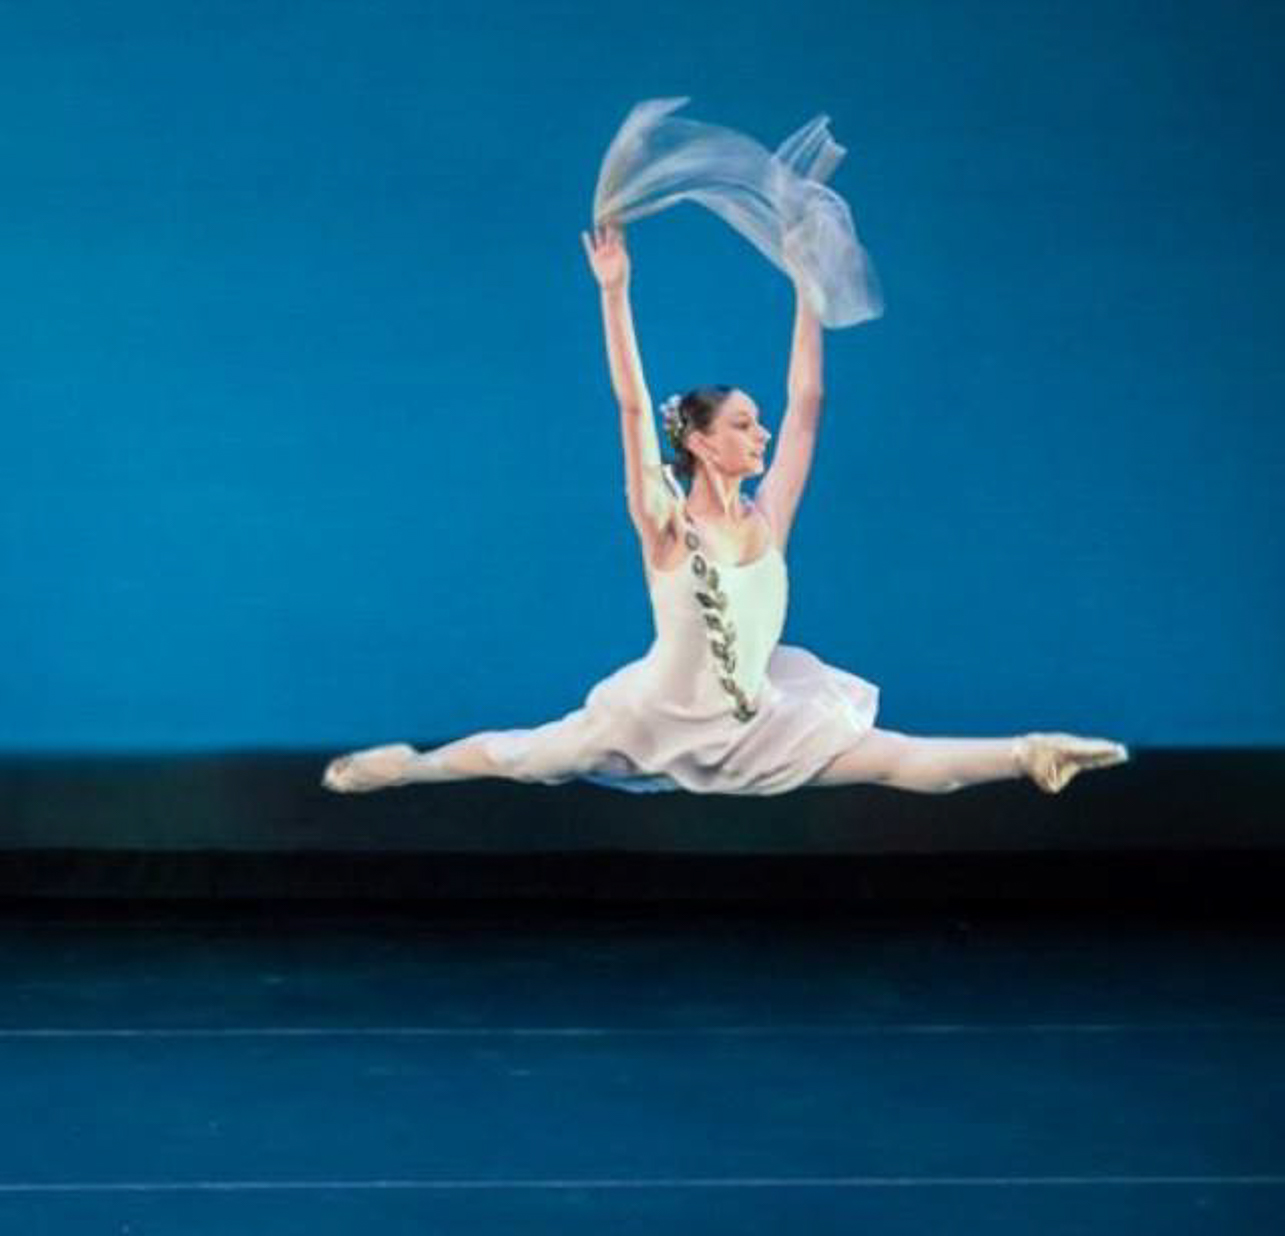 2020 CofC Graduate and Dancer Rebekah Lyons performs ballet